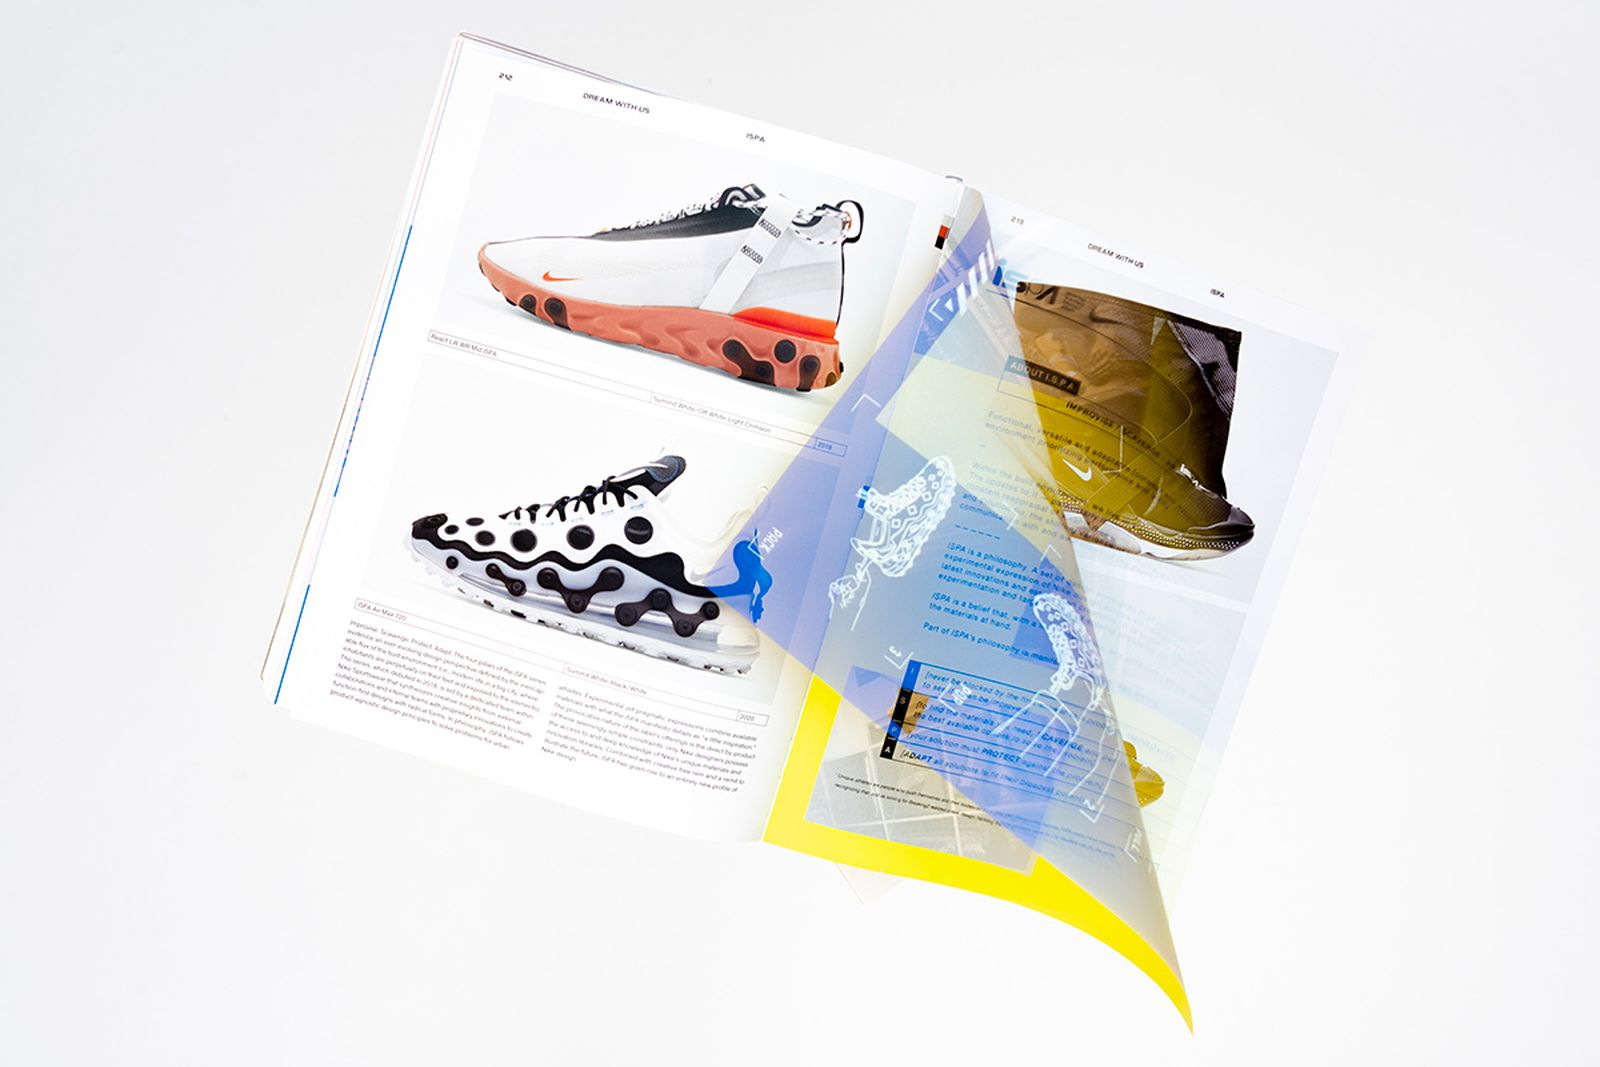 nike-better-is-temporary-book-03